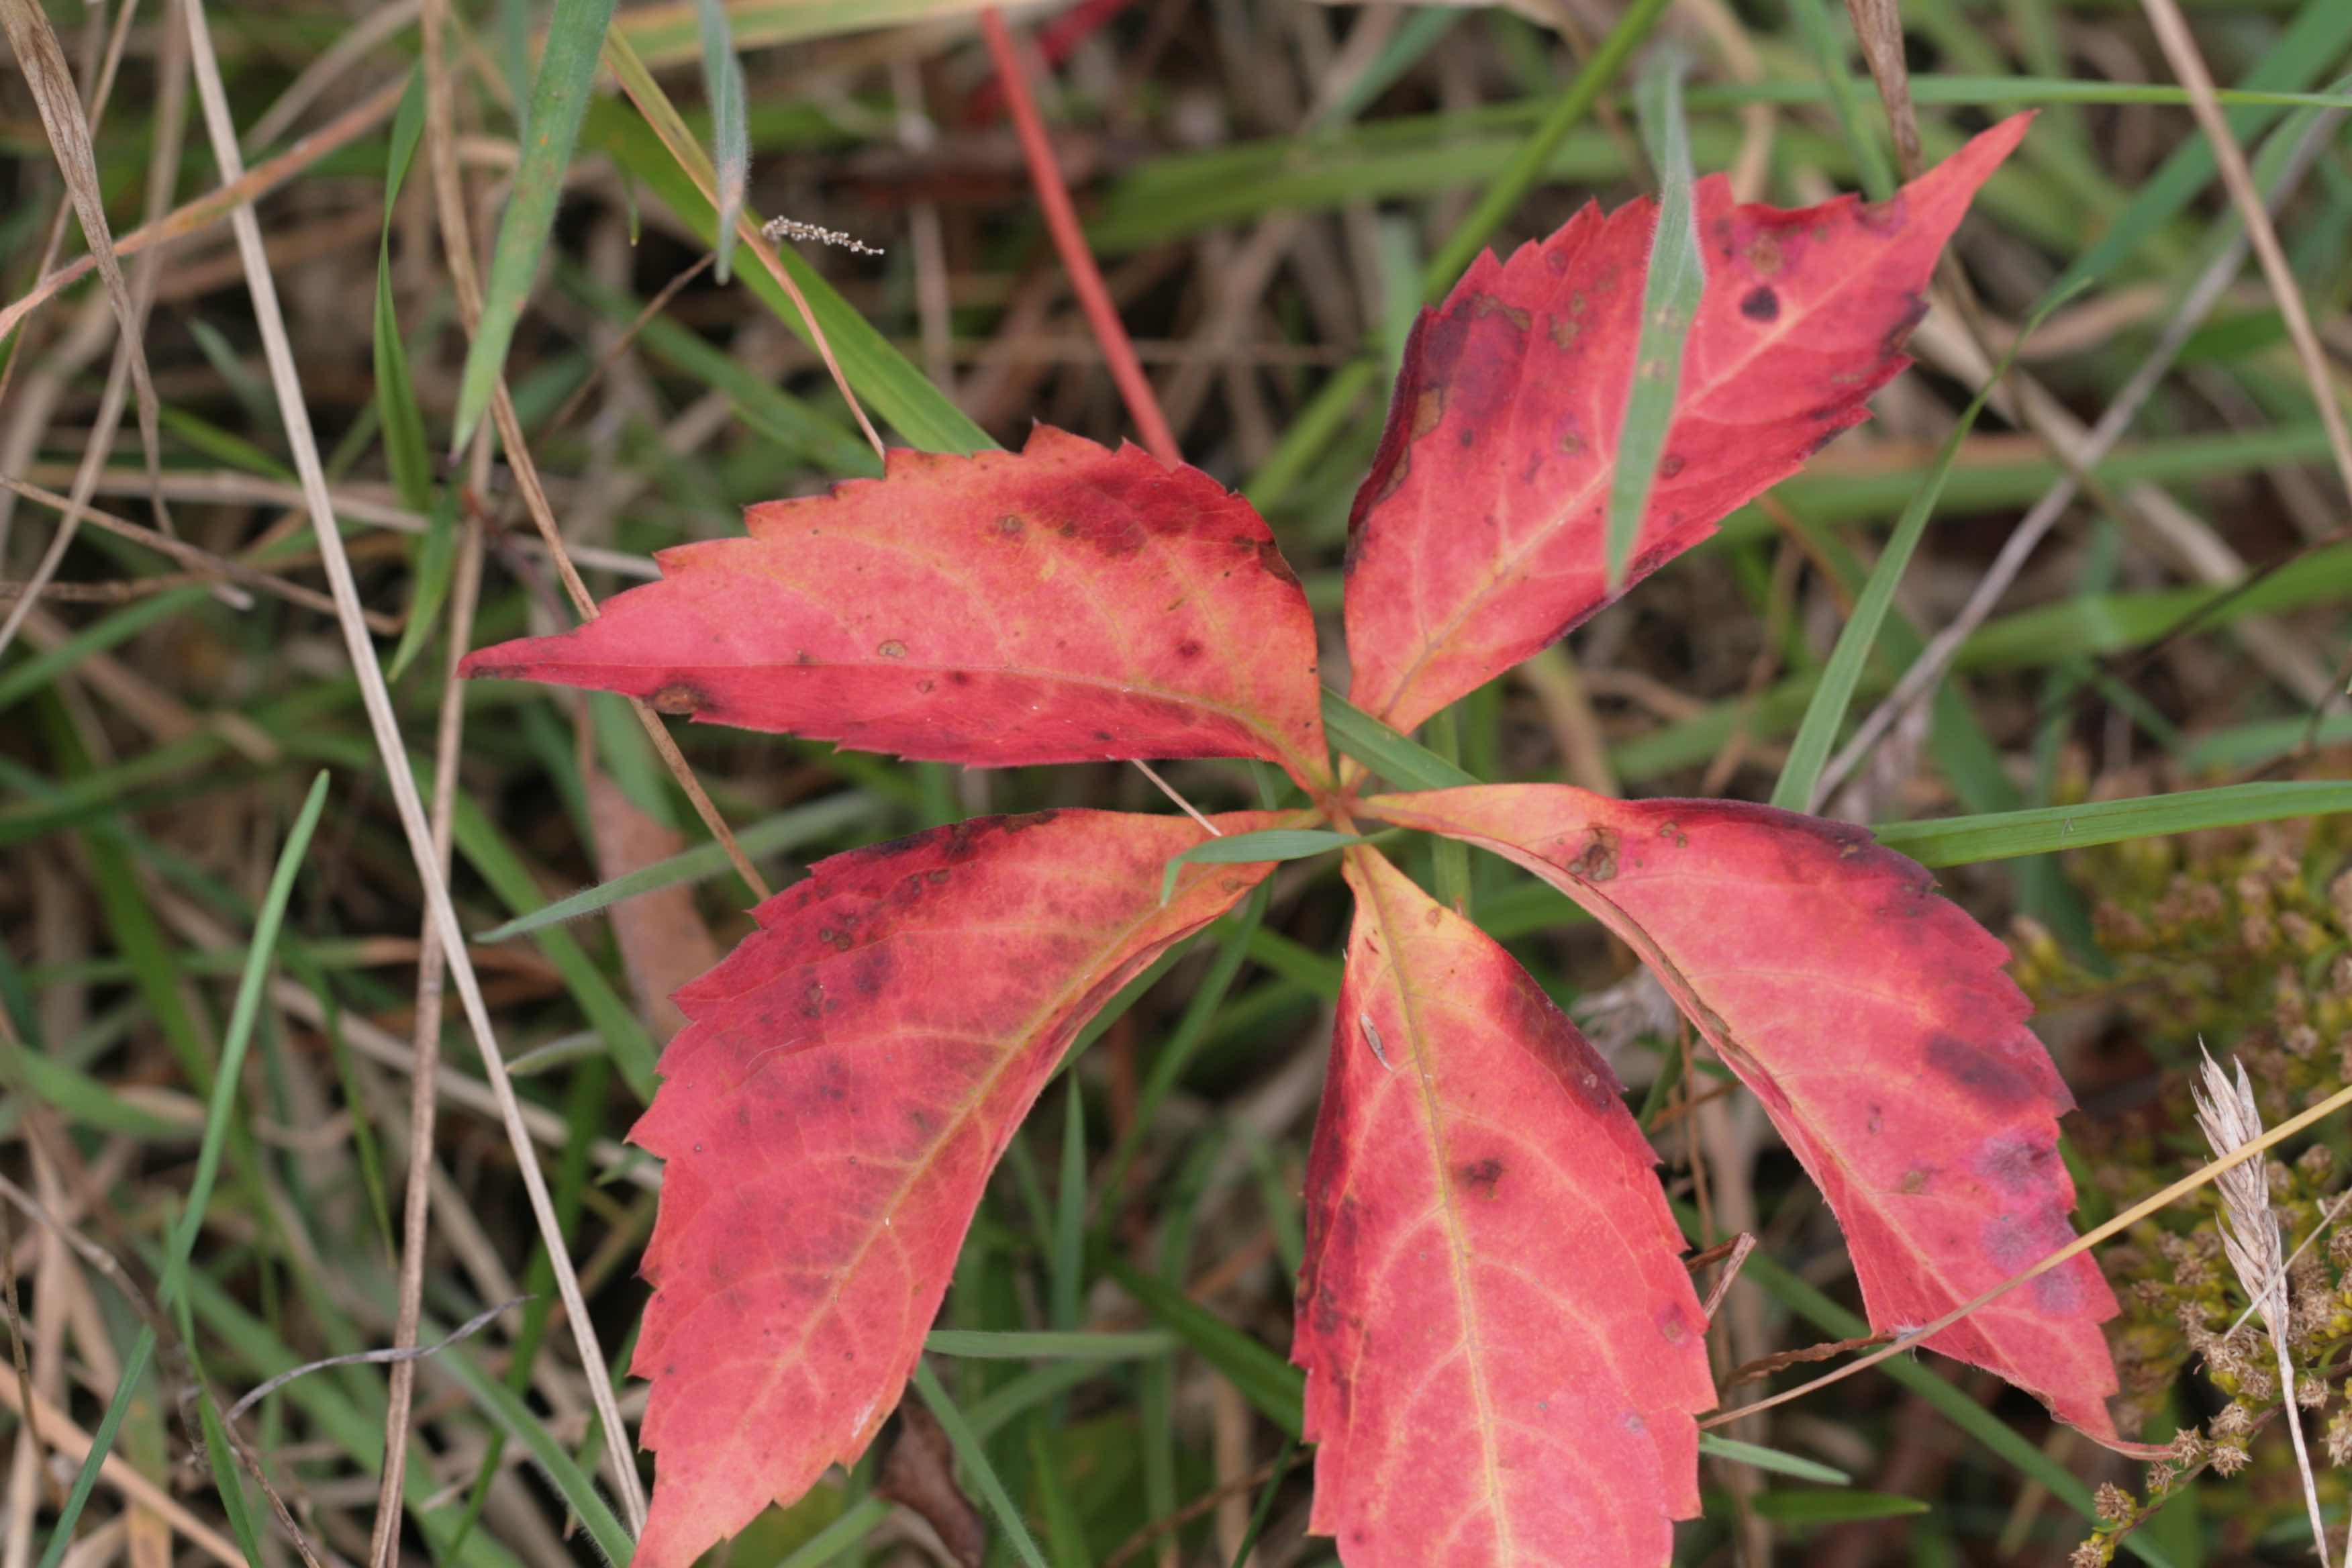 The Scientific Name is Parthenocissus quinquefolia. You will likely hear them called Virginia Creeper. This picture shows the Nice Fall color of Parthenocissus quinquefolia